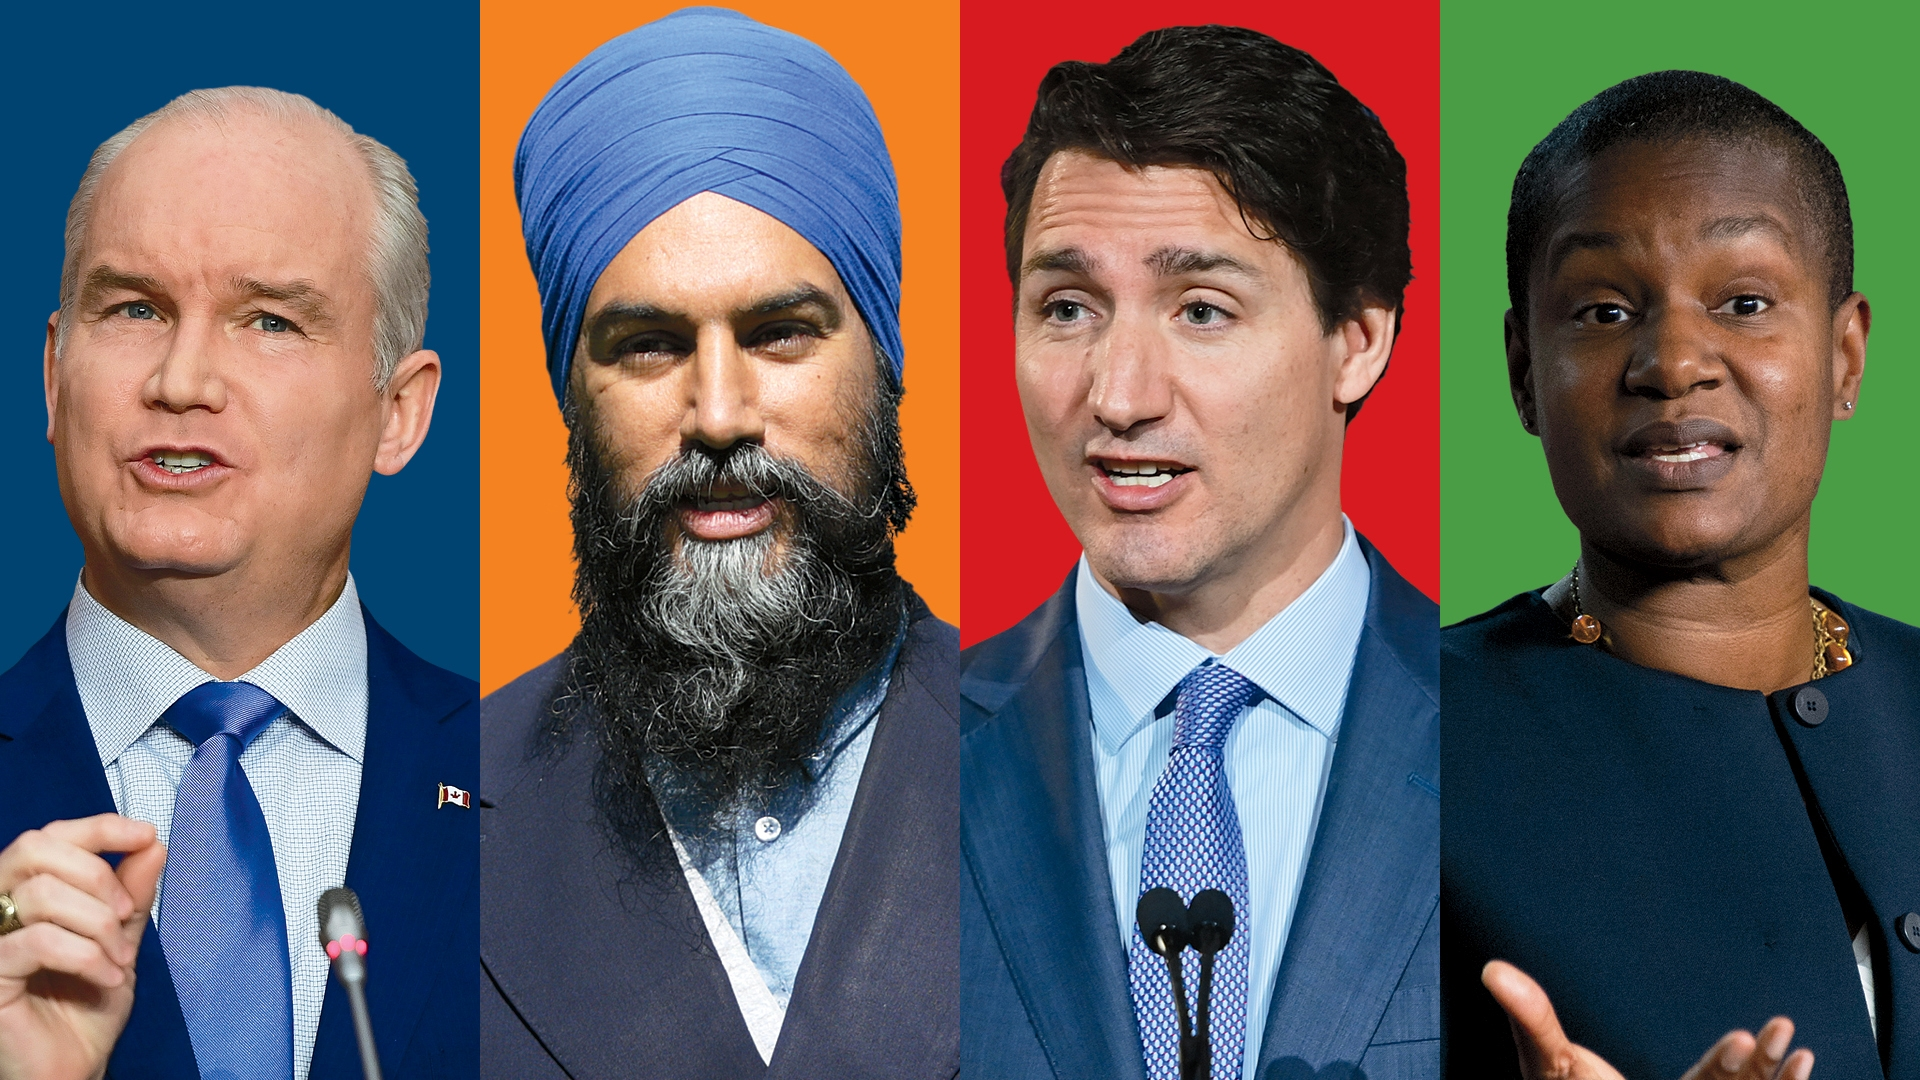 Election Candidates Elect Conservatives